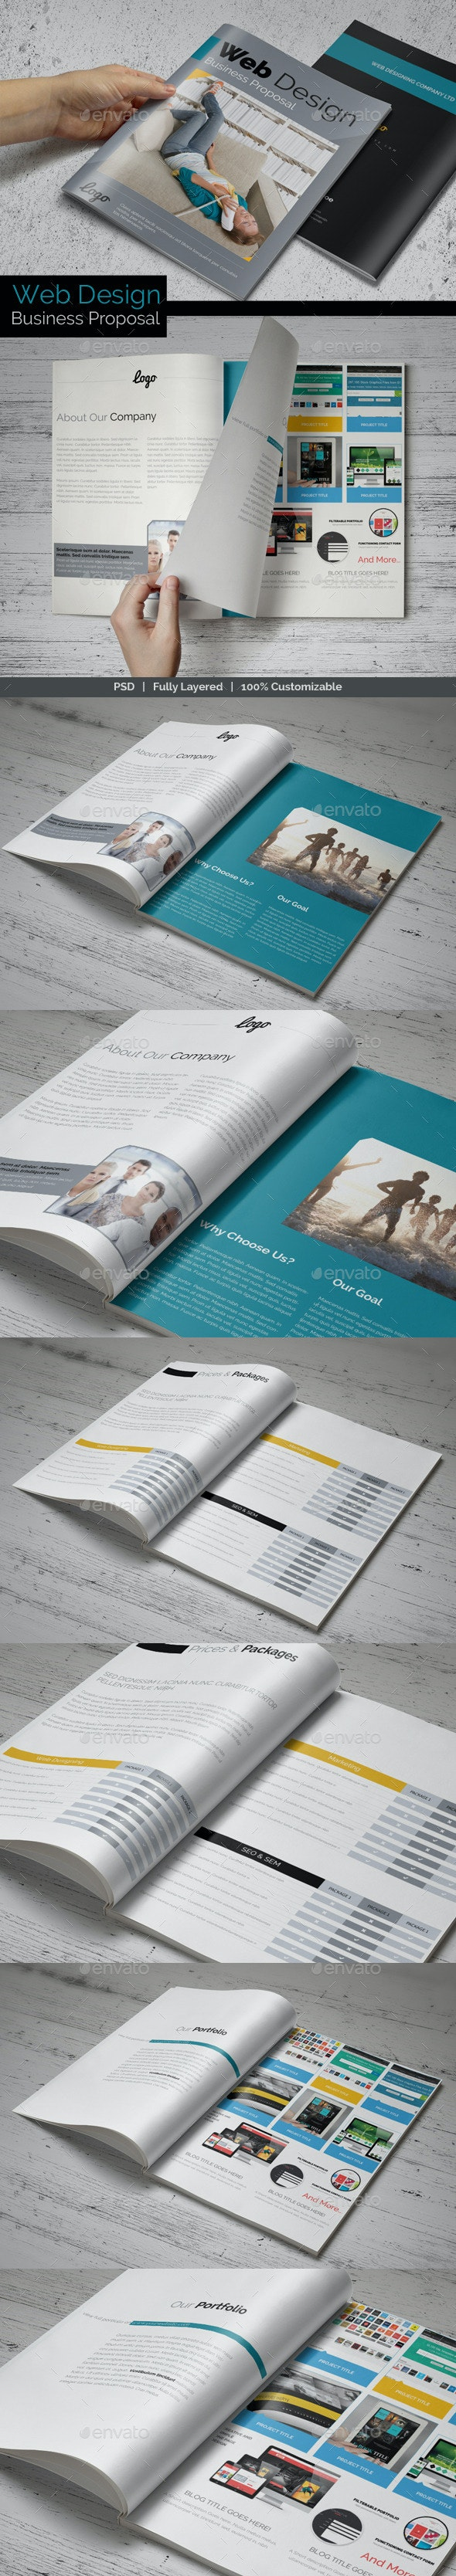 Web Design Business Proposal - Proposals & Invoices Stationery